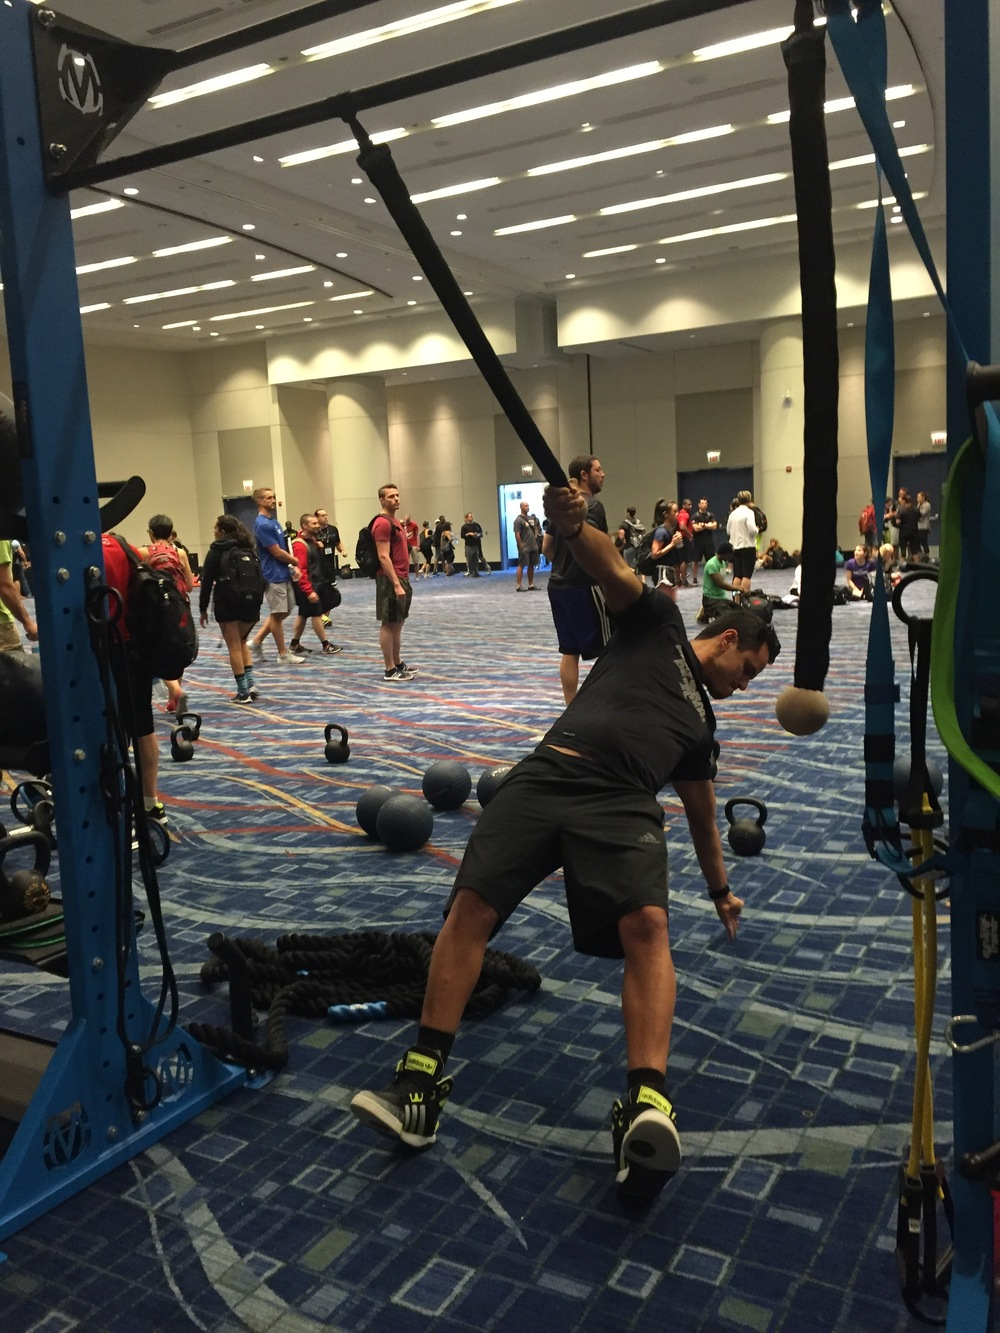 Suspension training with rope grip